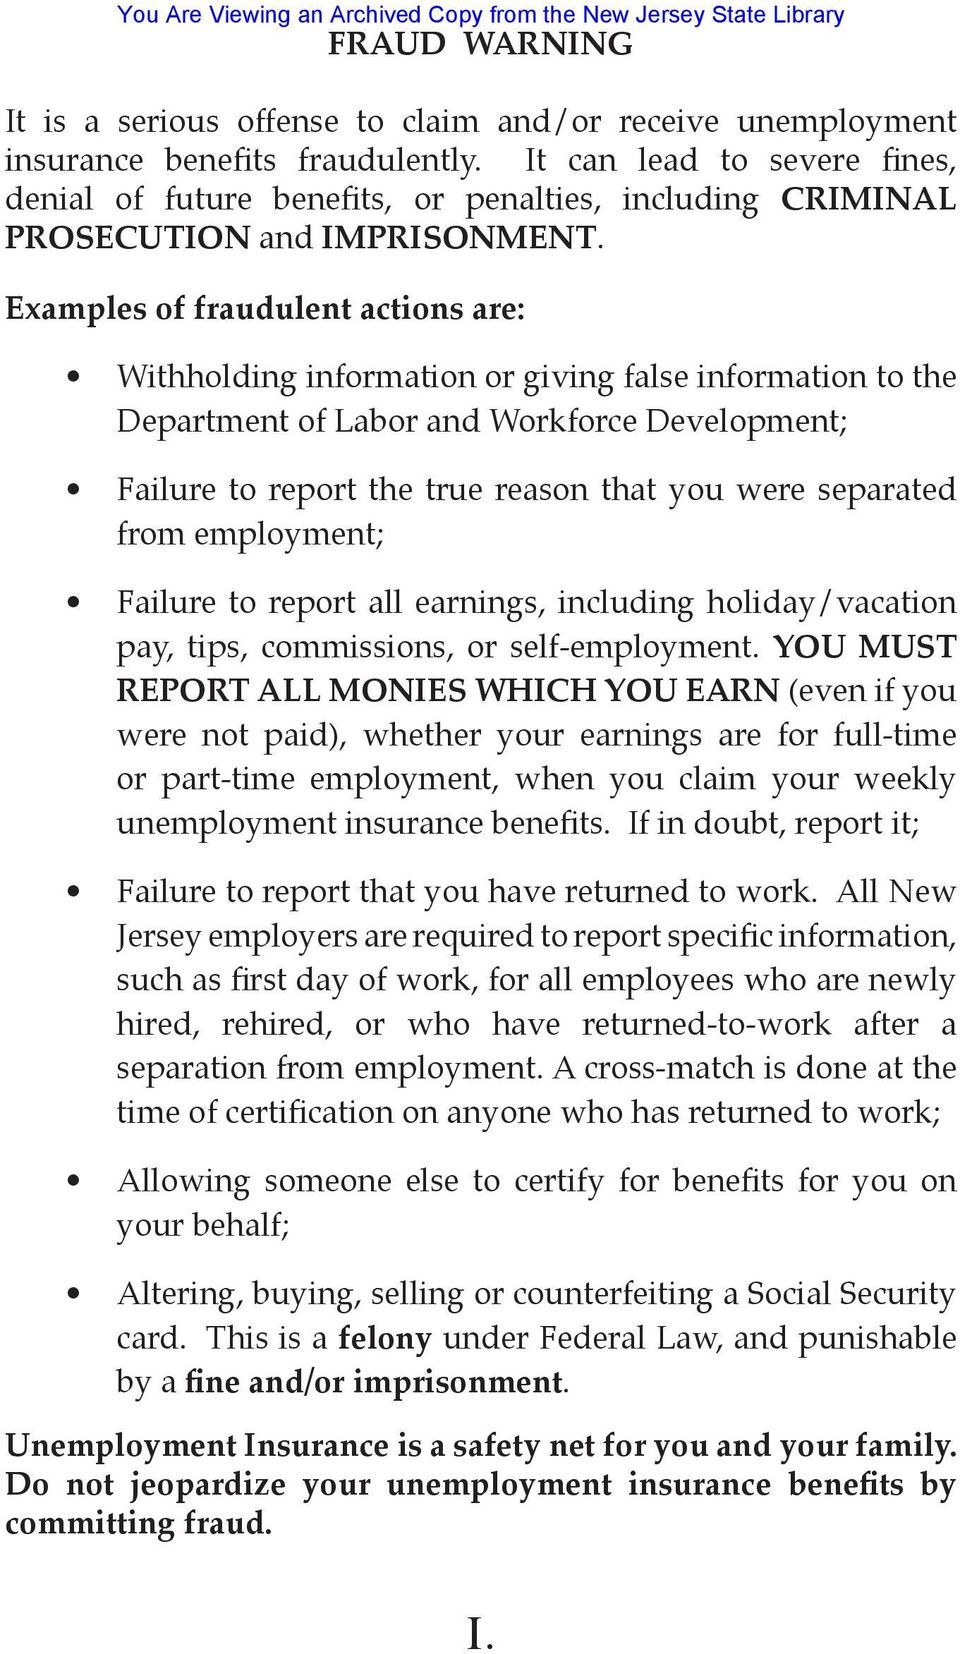 State of New Jersey Department of Labor and Workforce